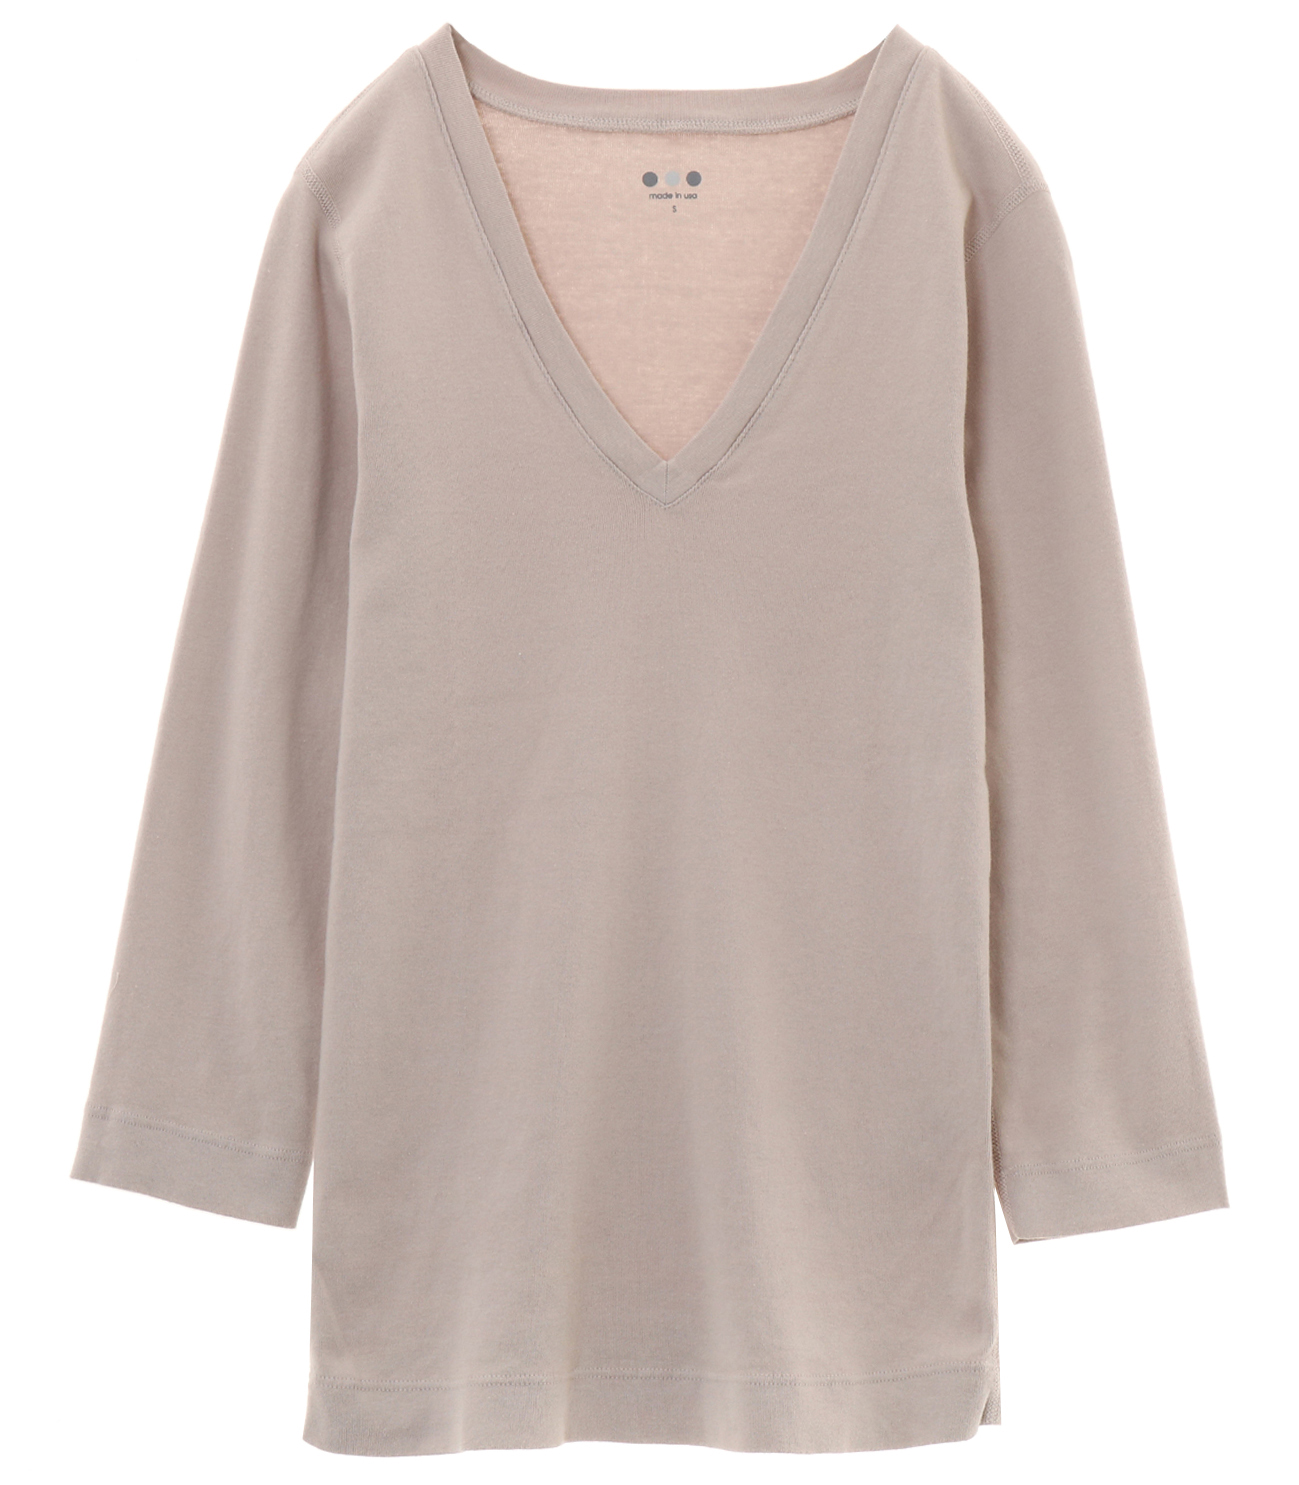 cotton knits 3/4 v-neck nicole 詳細画像 light stone 1